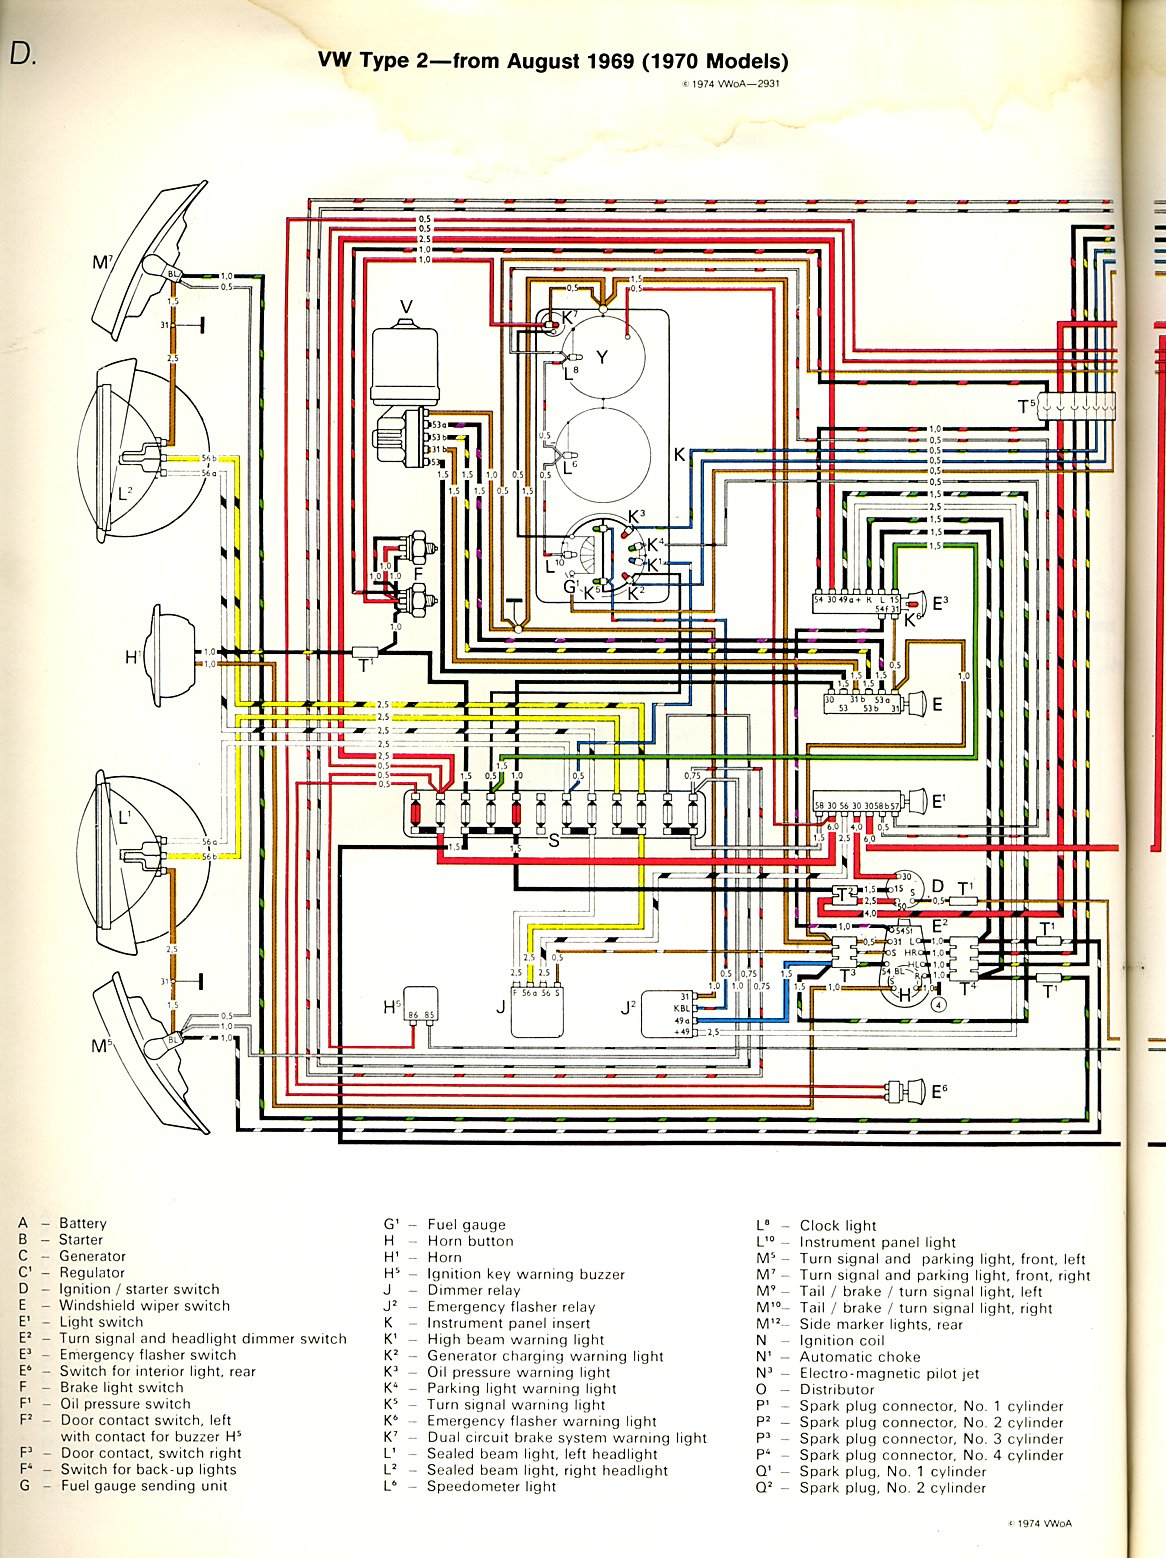 1971 vw bus engine diagram 1970 bus wiring diagram | thegoldenbug.com